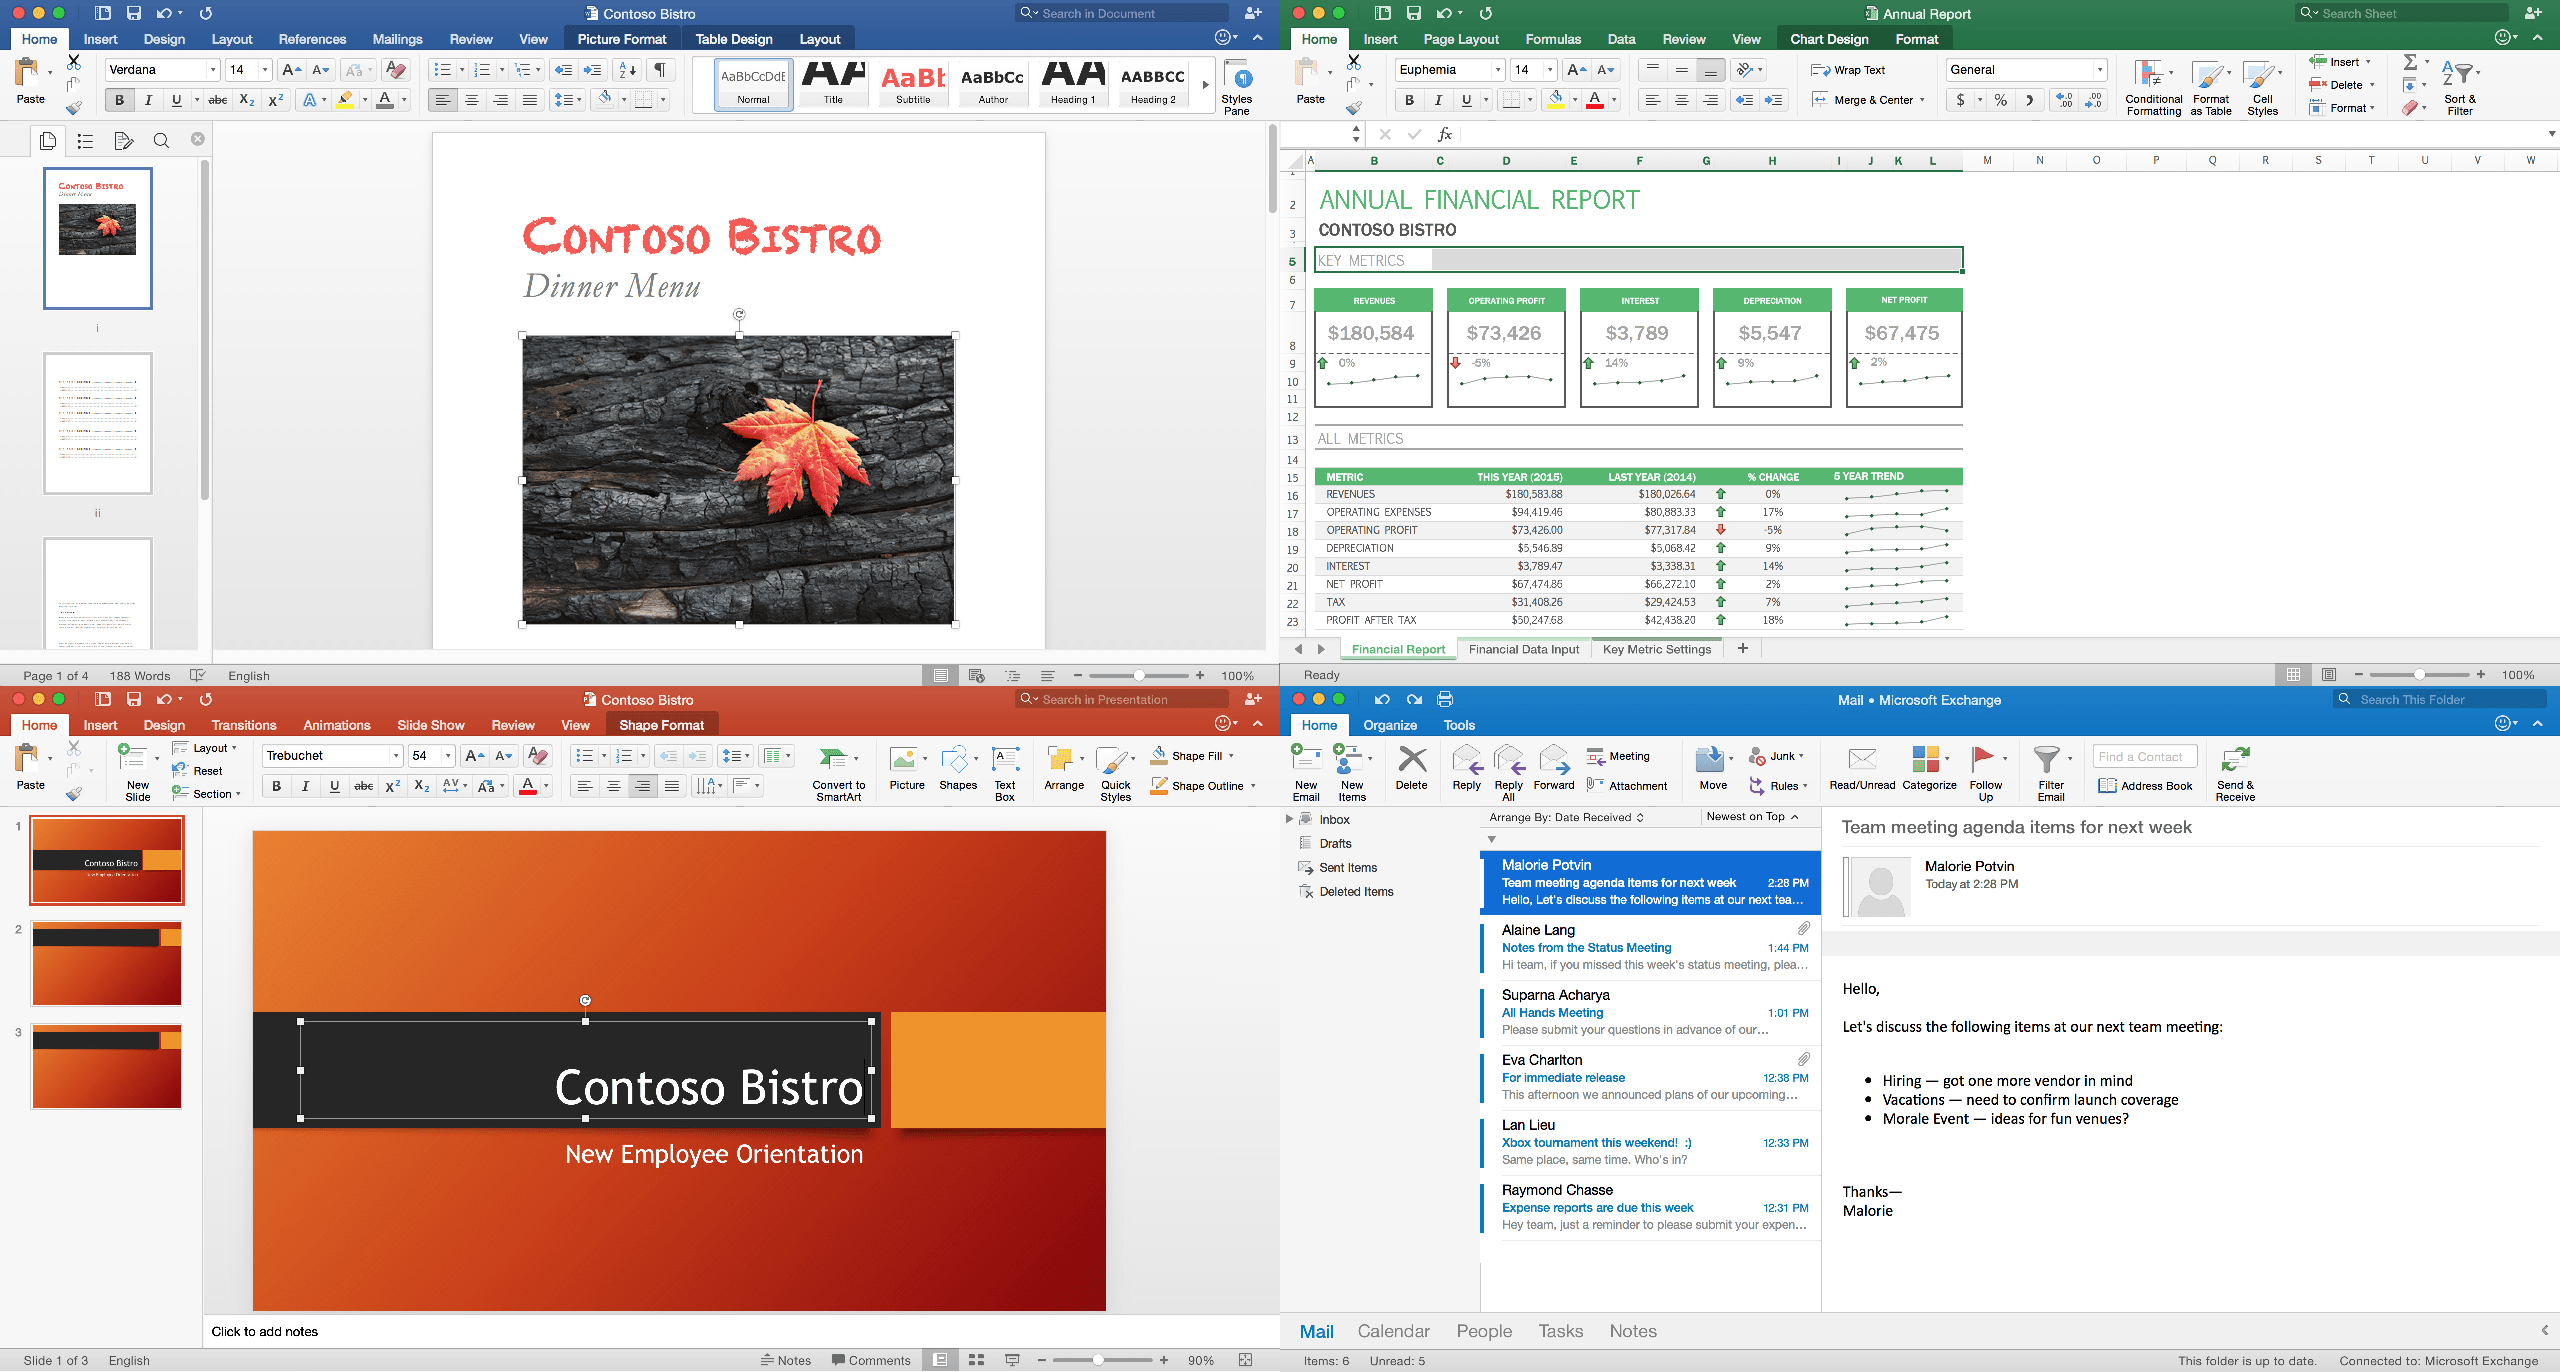 microsoft office 2016 for mac full crack